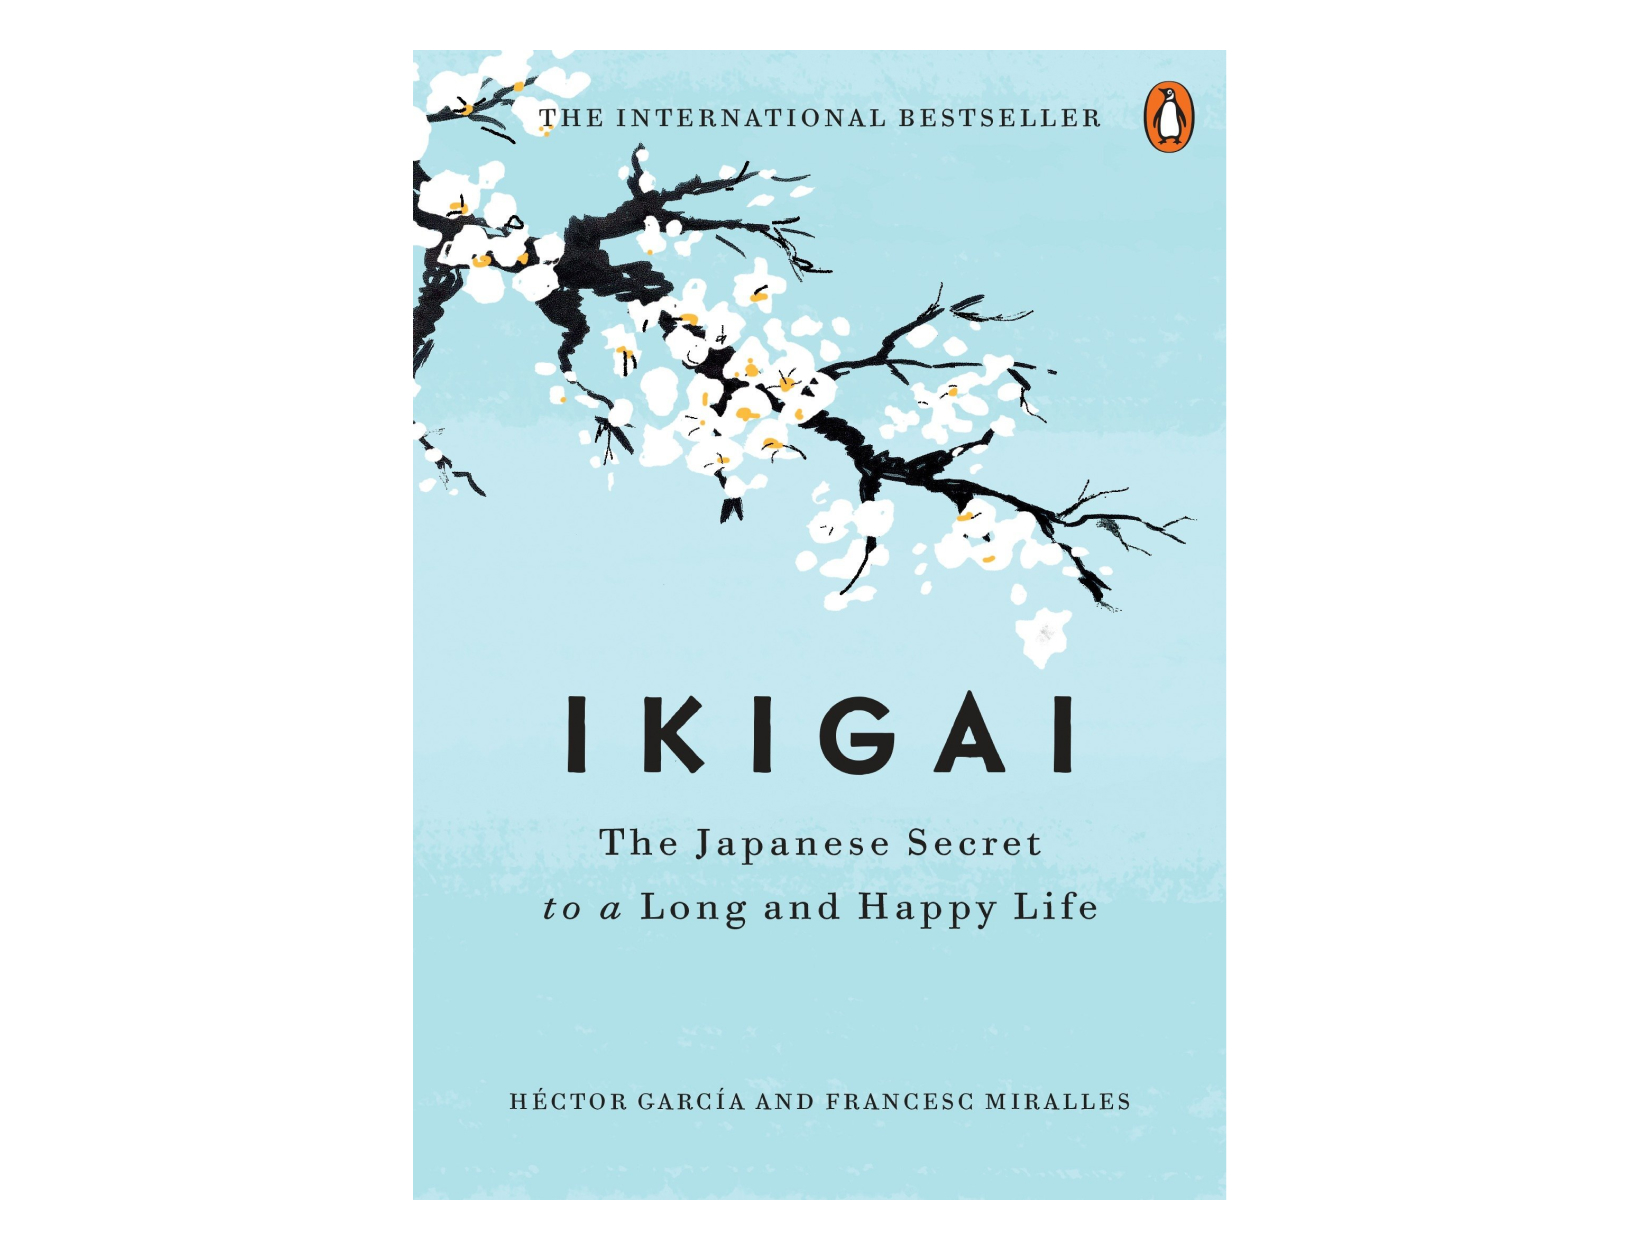 <em>Ikigai: The Japanese Secret to a Long and Happy Life</em> by Héctor García and Francesc Miralles